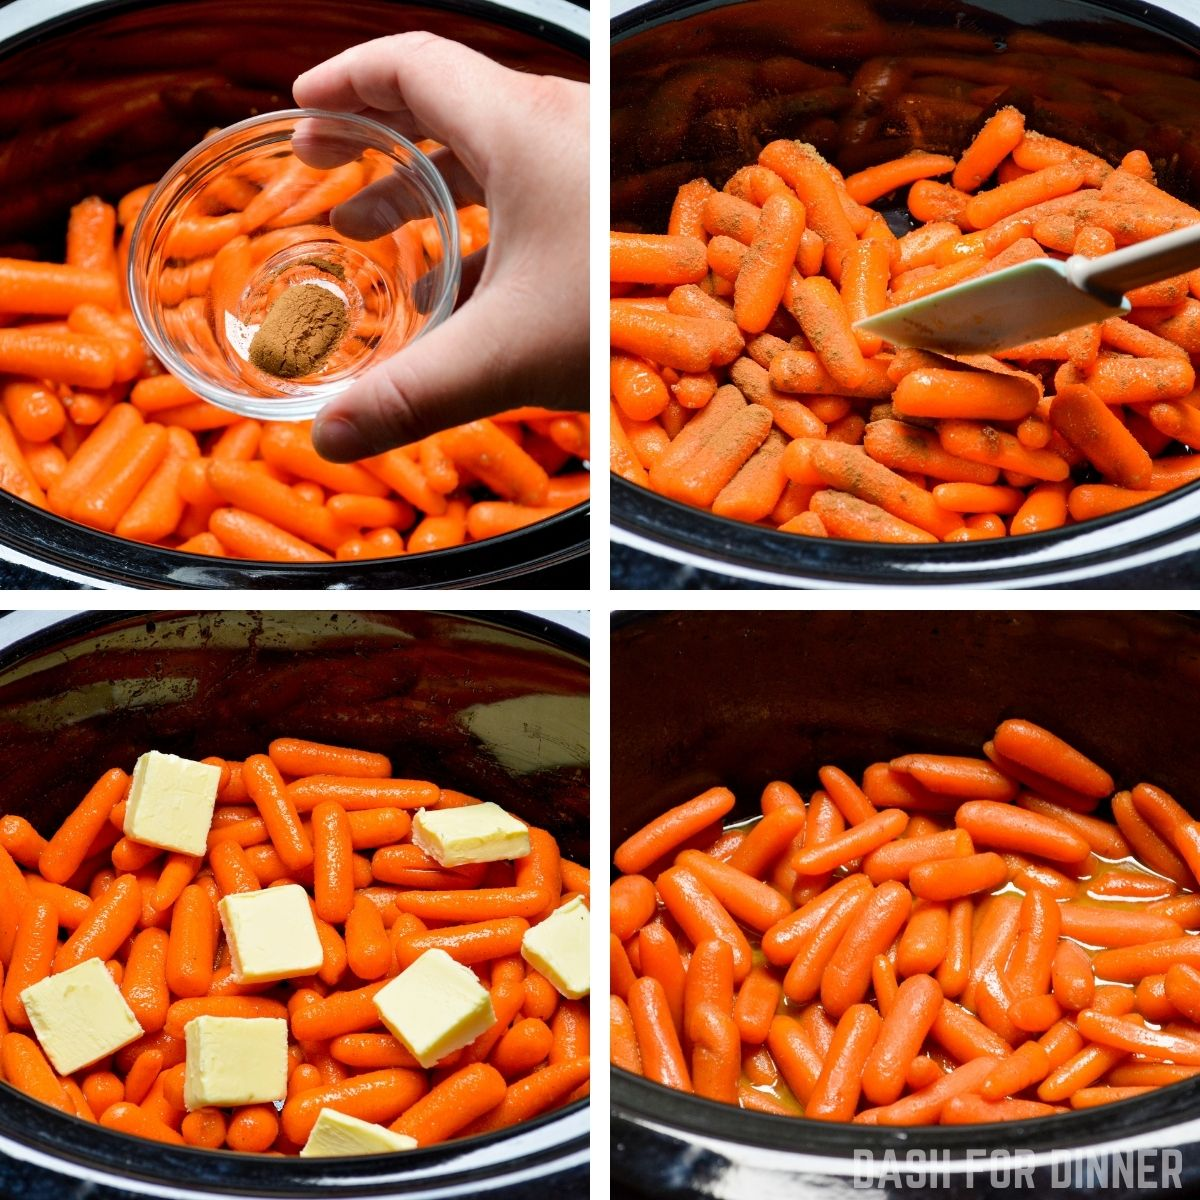 How to make slow cooker glazed carrots